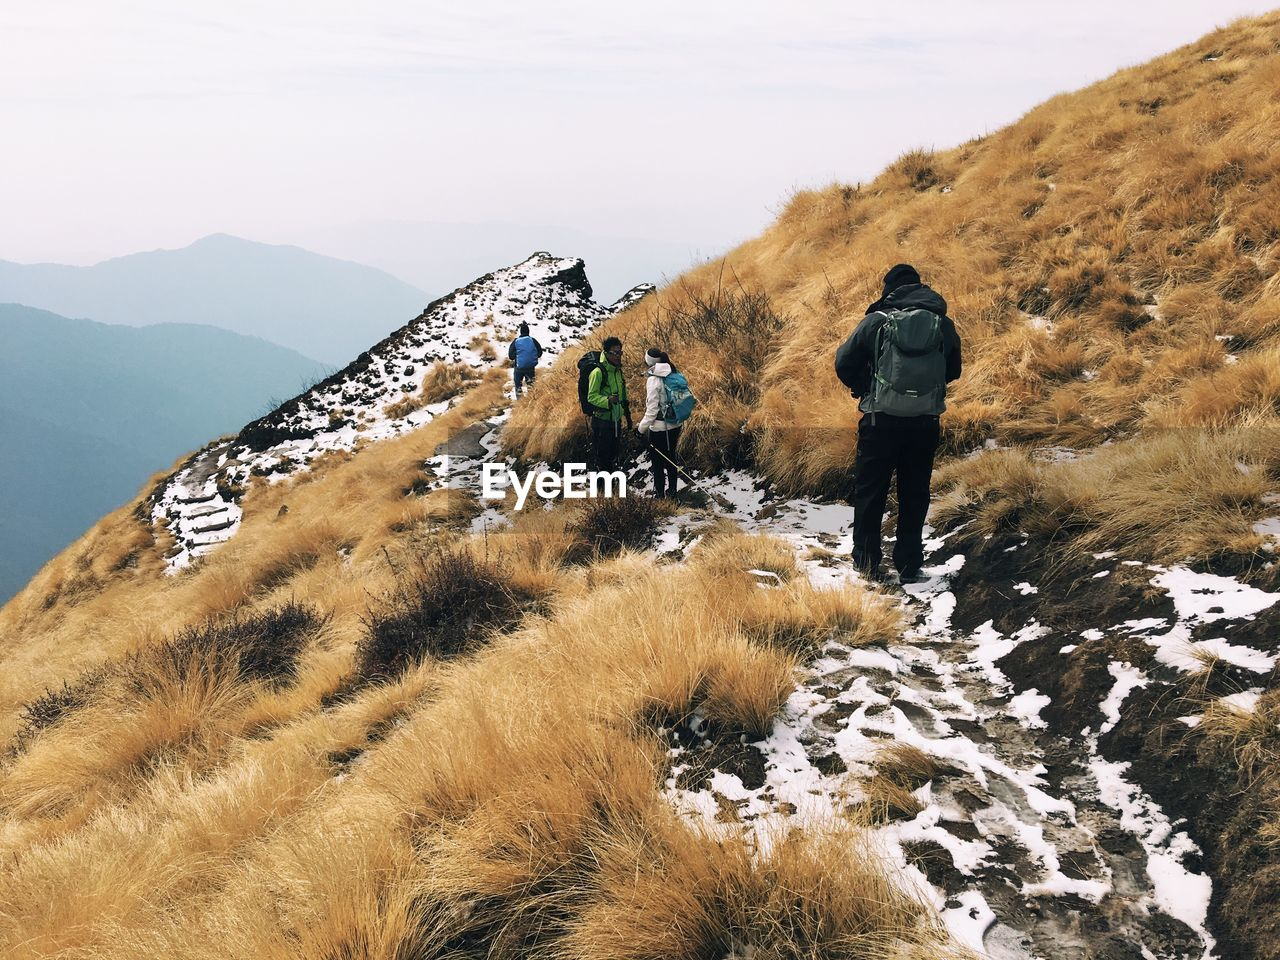 REAR VIEW OF PEOPLE ON MOUNTAINS AGAINST SKY